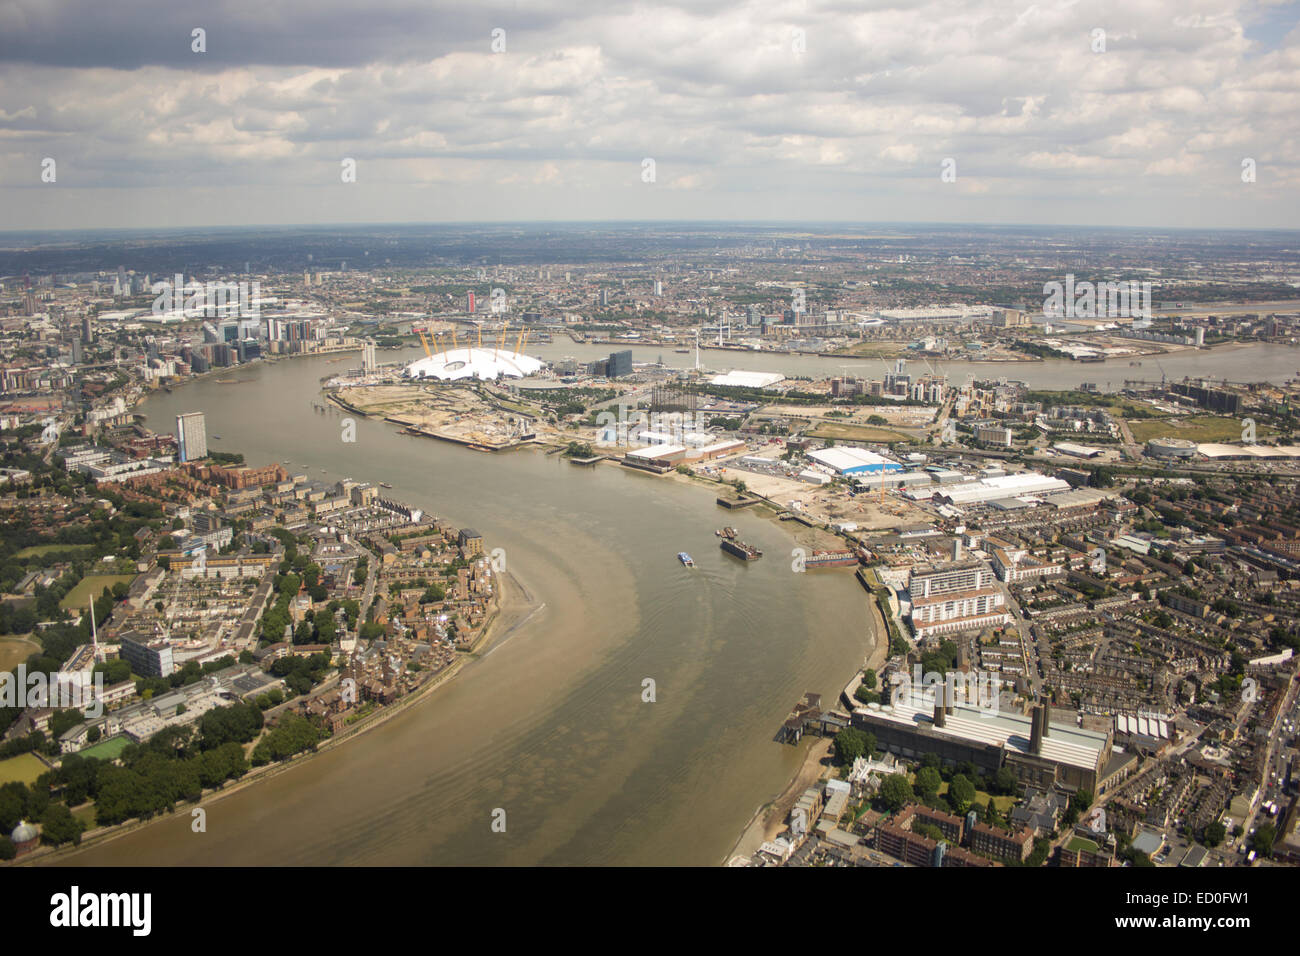 United Kingdom, London, Greenwich, Aerial view of O2 Arena and Greenwich Peninsula - Stock Image